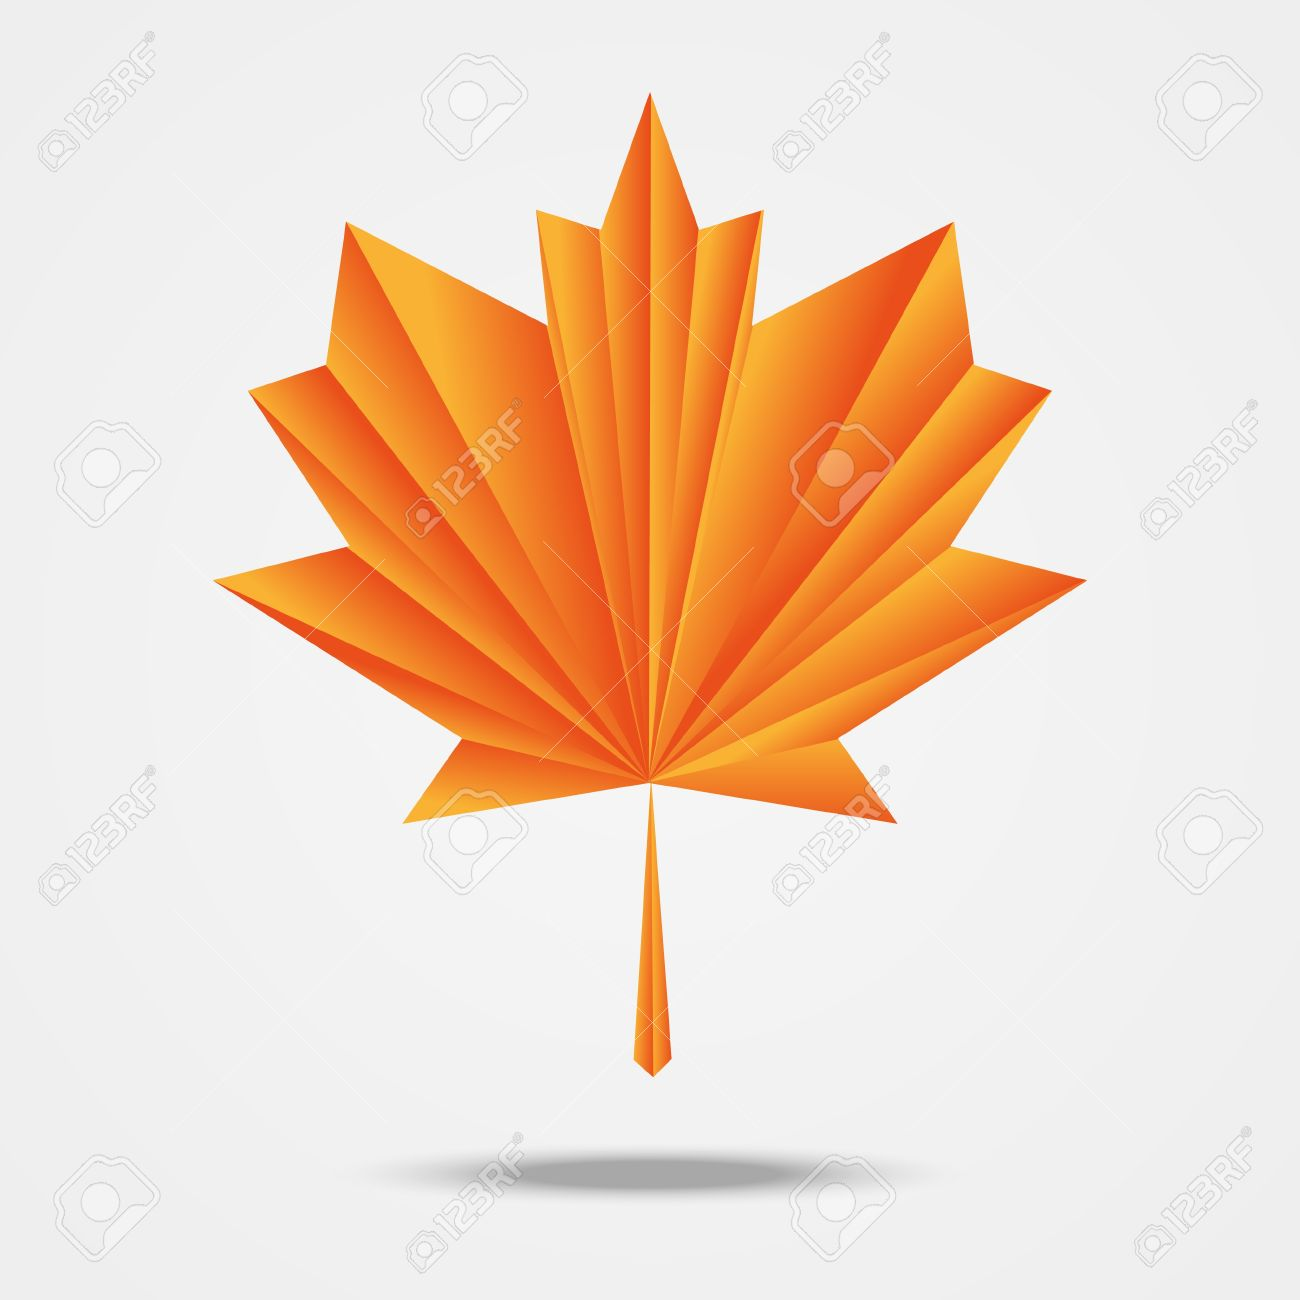 Paper Origami Maple Leaf Stock Vector